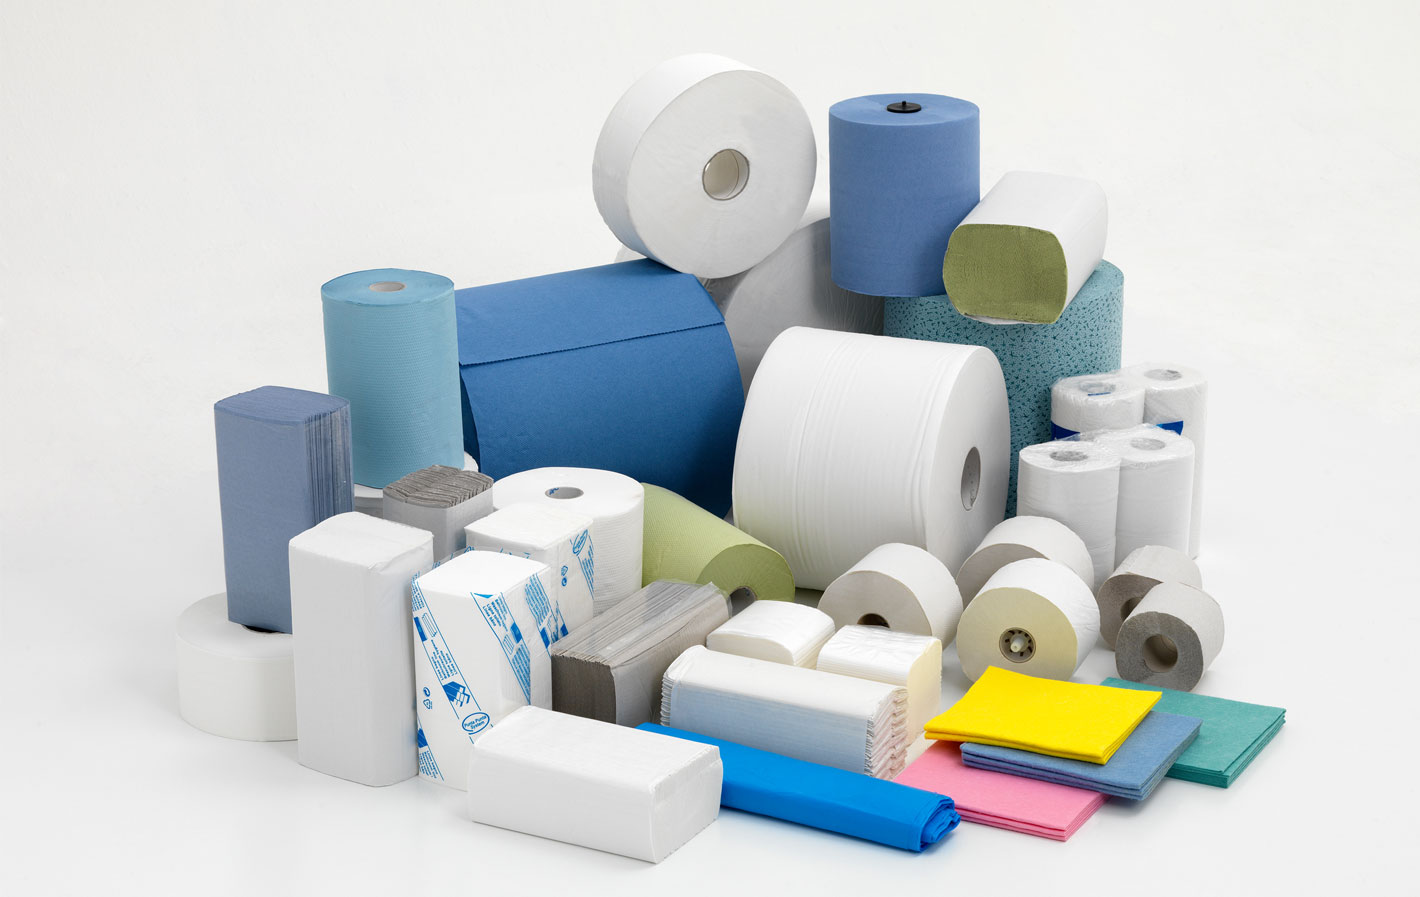 Various washroom disposable products from Elite washrooms